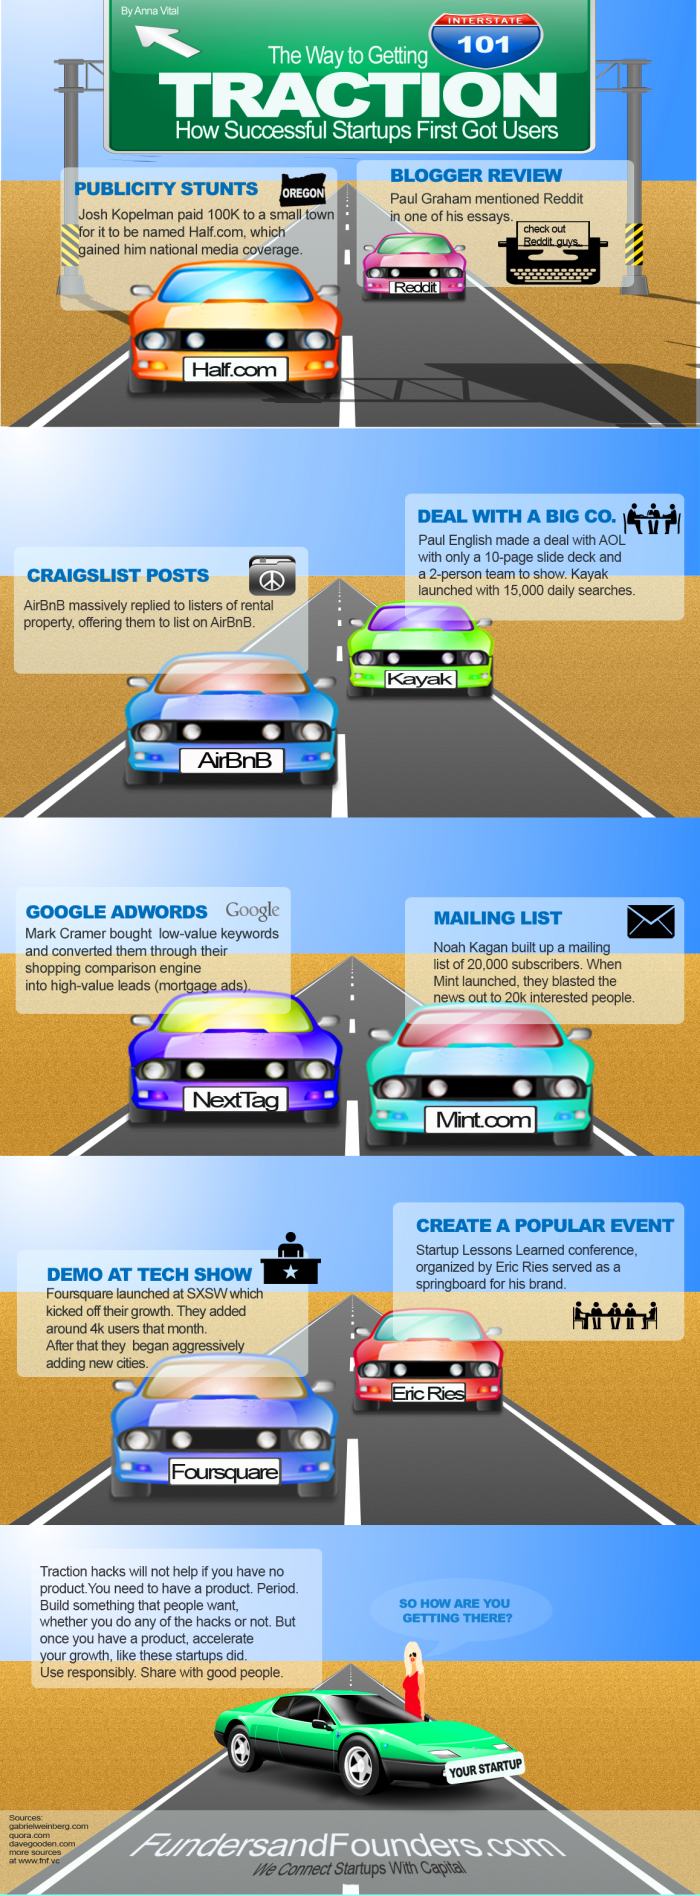 Startup traction infographic